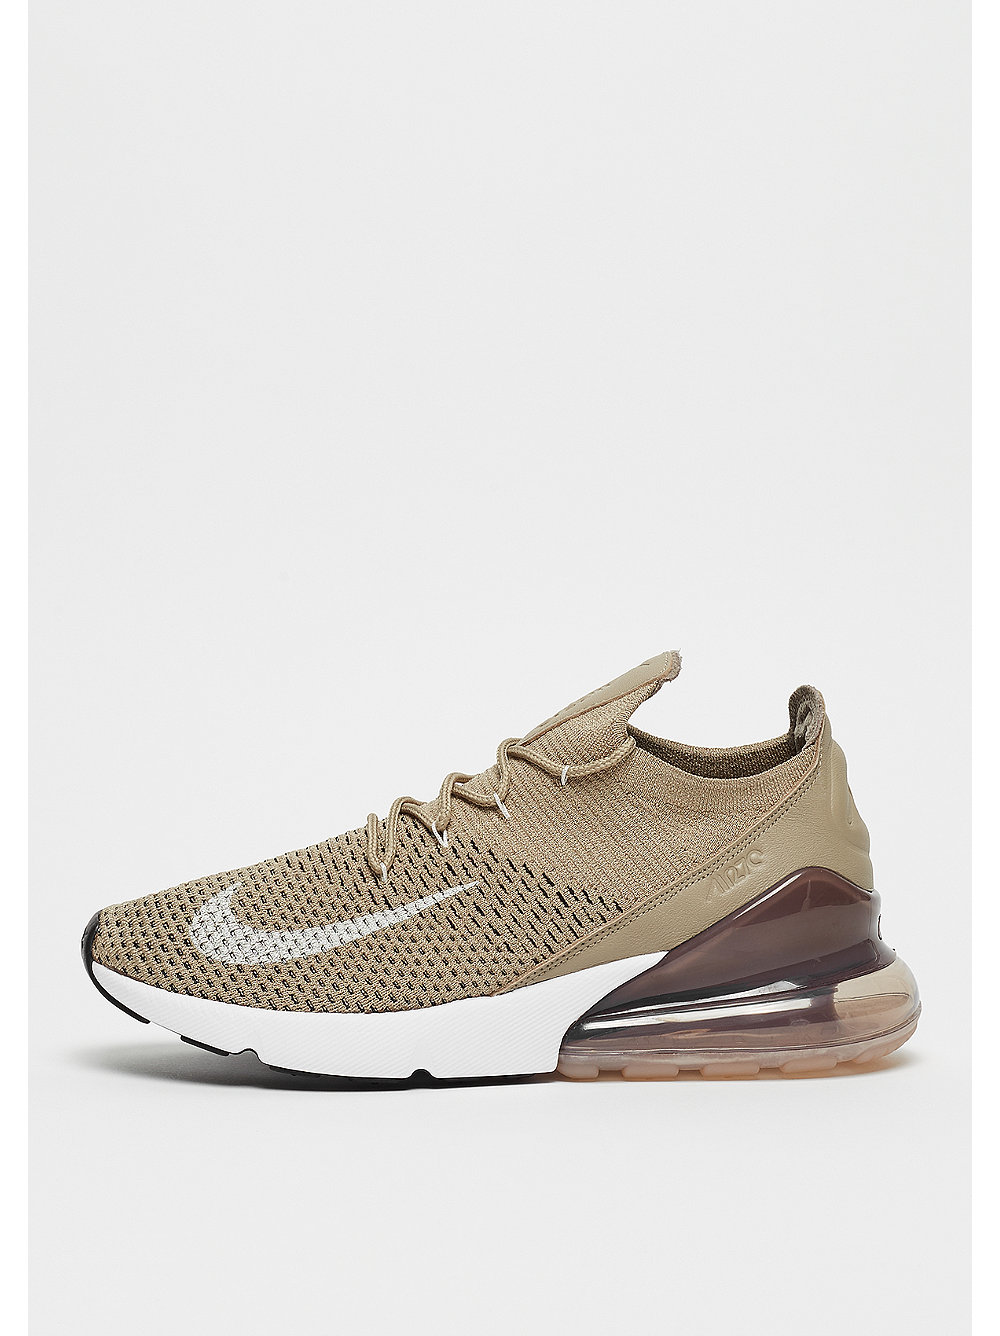 on sale 44c1c 1ca79 nike air max 270 flyknit marroni